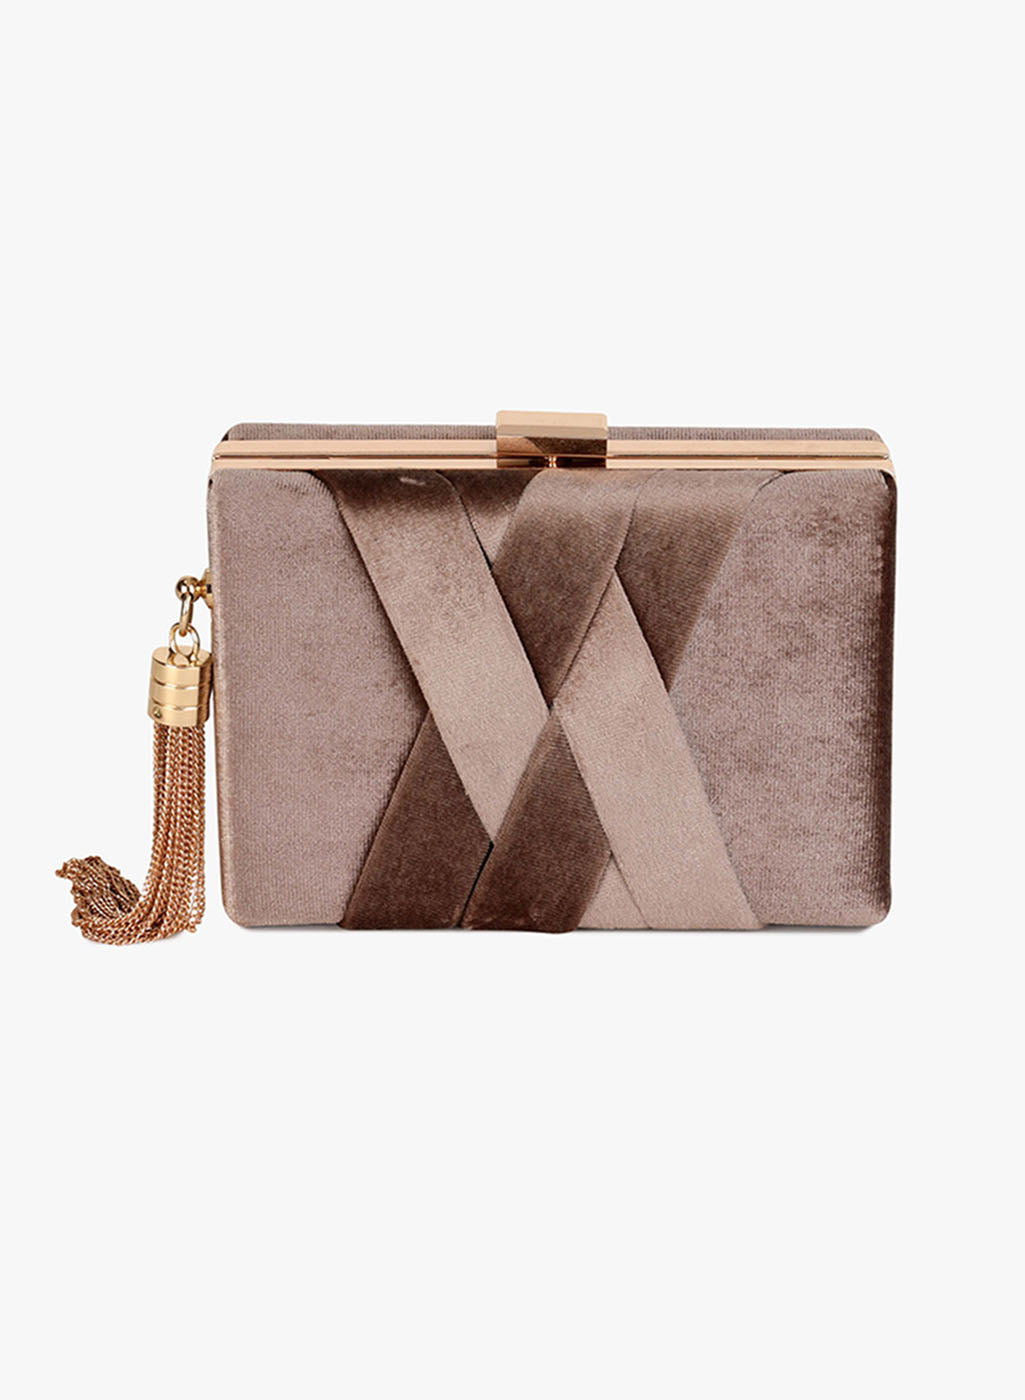 Gianna Copper Velvet Clutch